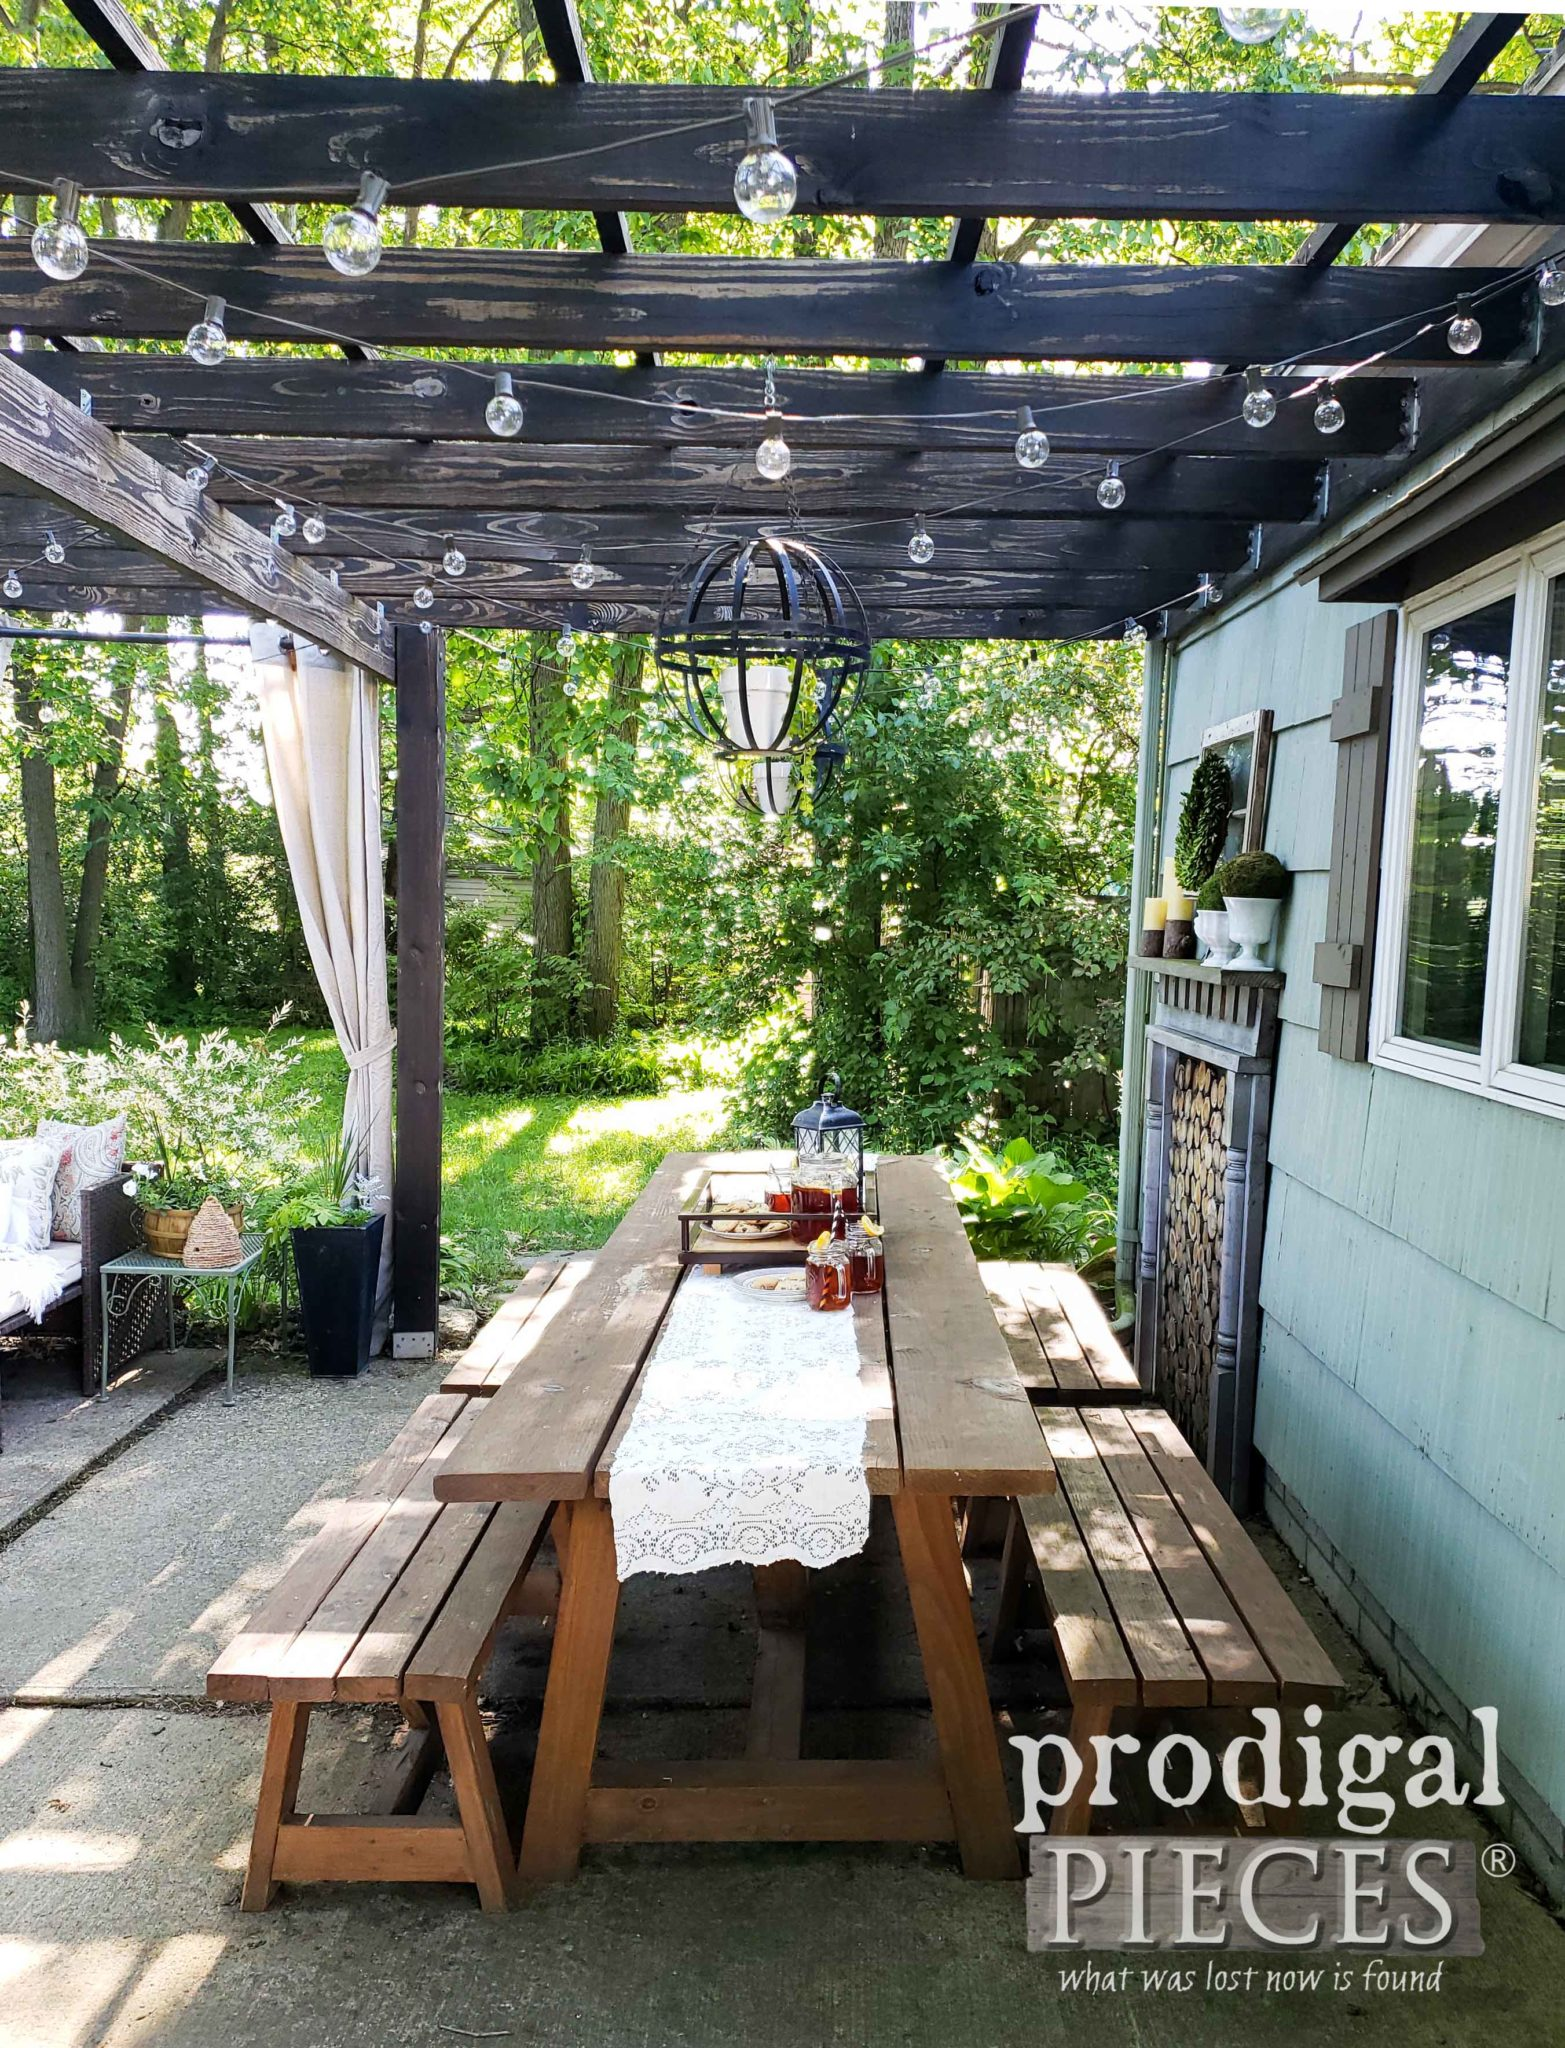 Farmhouse Style Patio Decor created from upcycled materials by Larissa of Prodigal Pieces | prodigalpieces.com #prodigalpieces #diy #home #homedecor #patio #outdoor